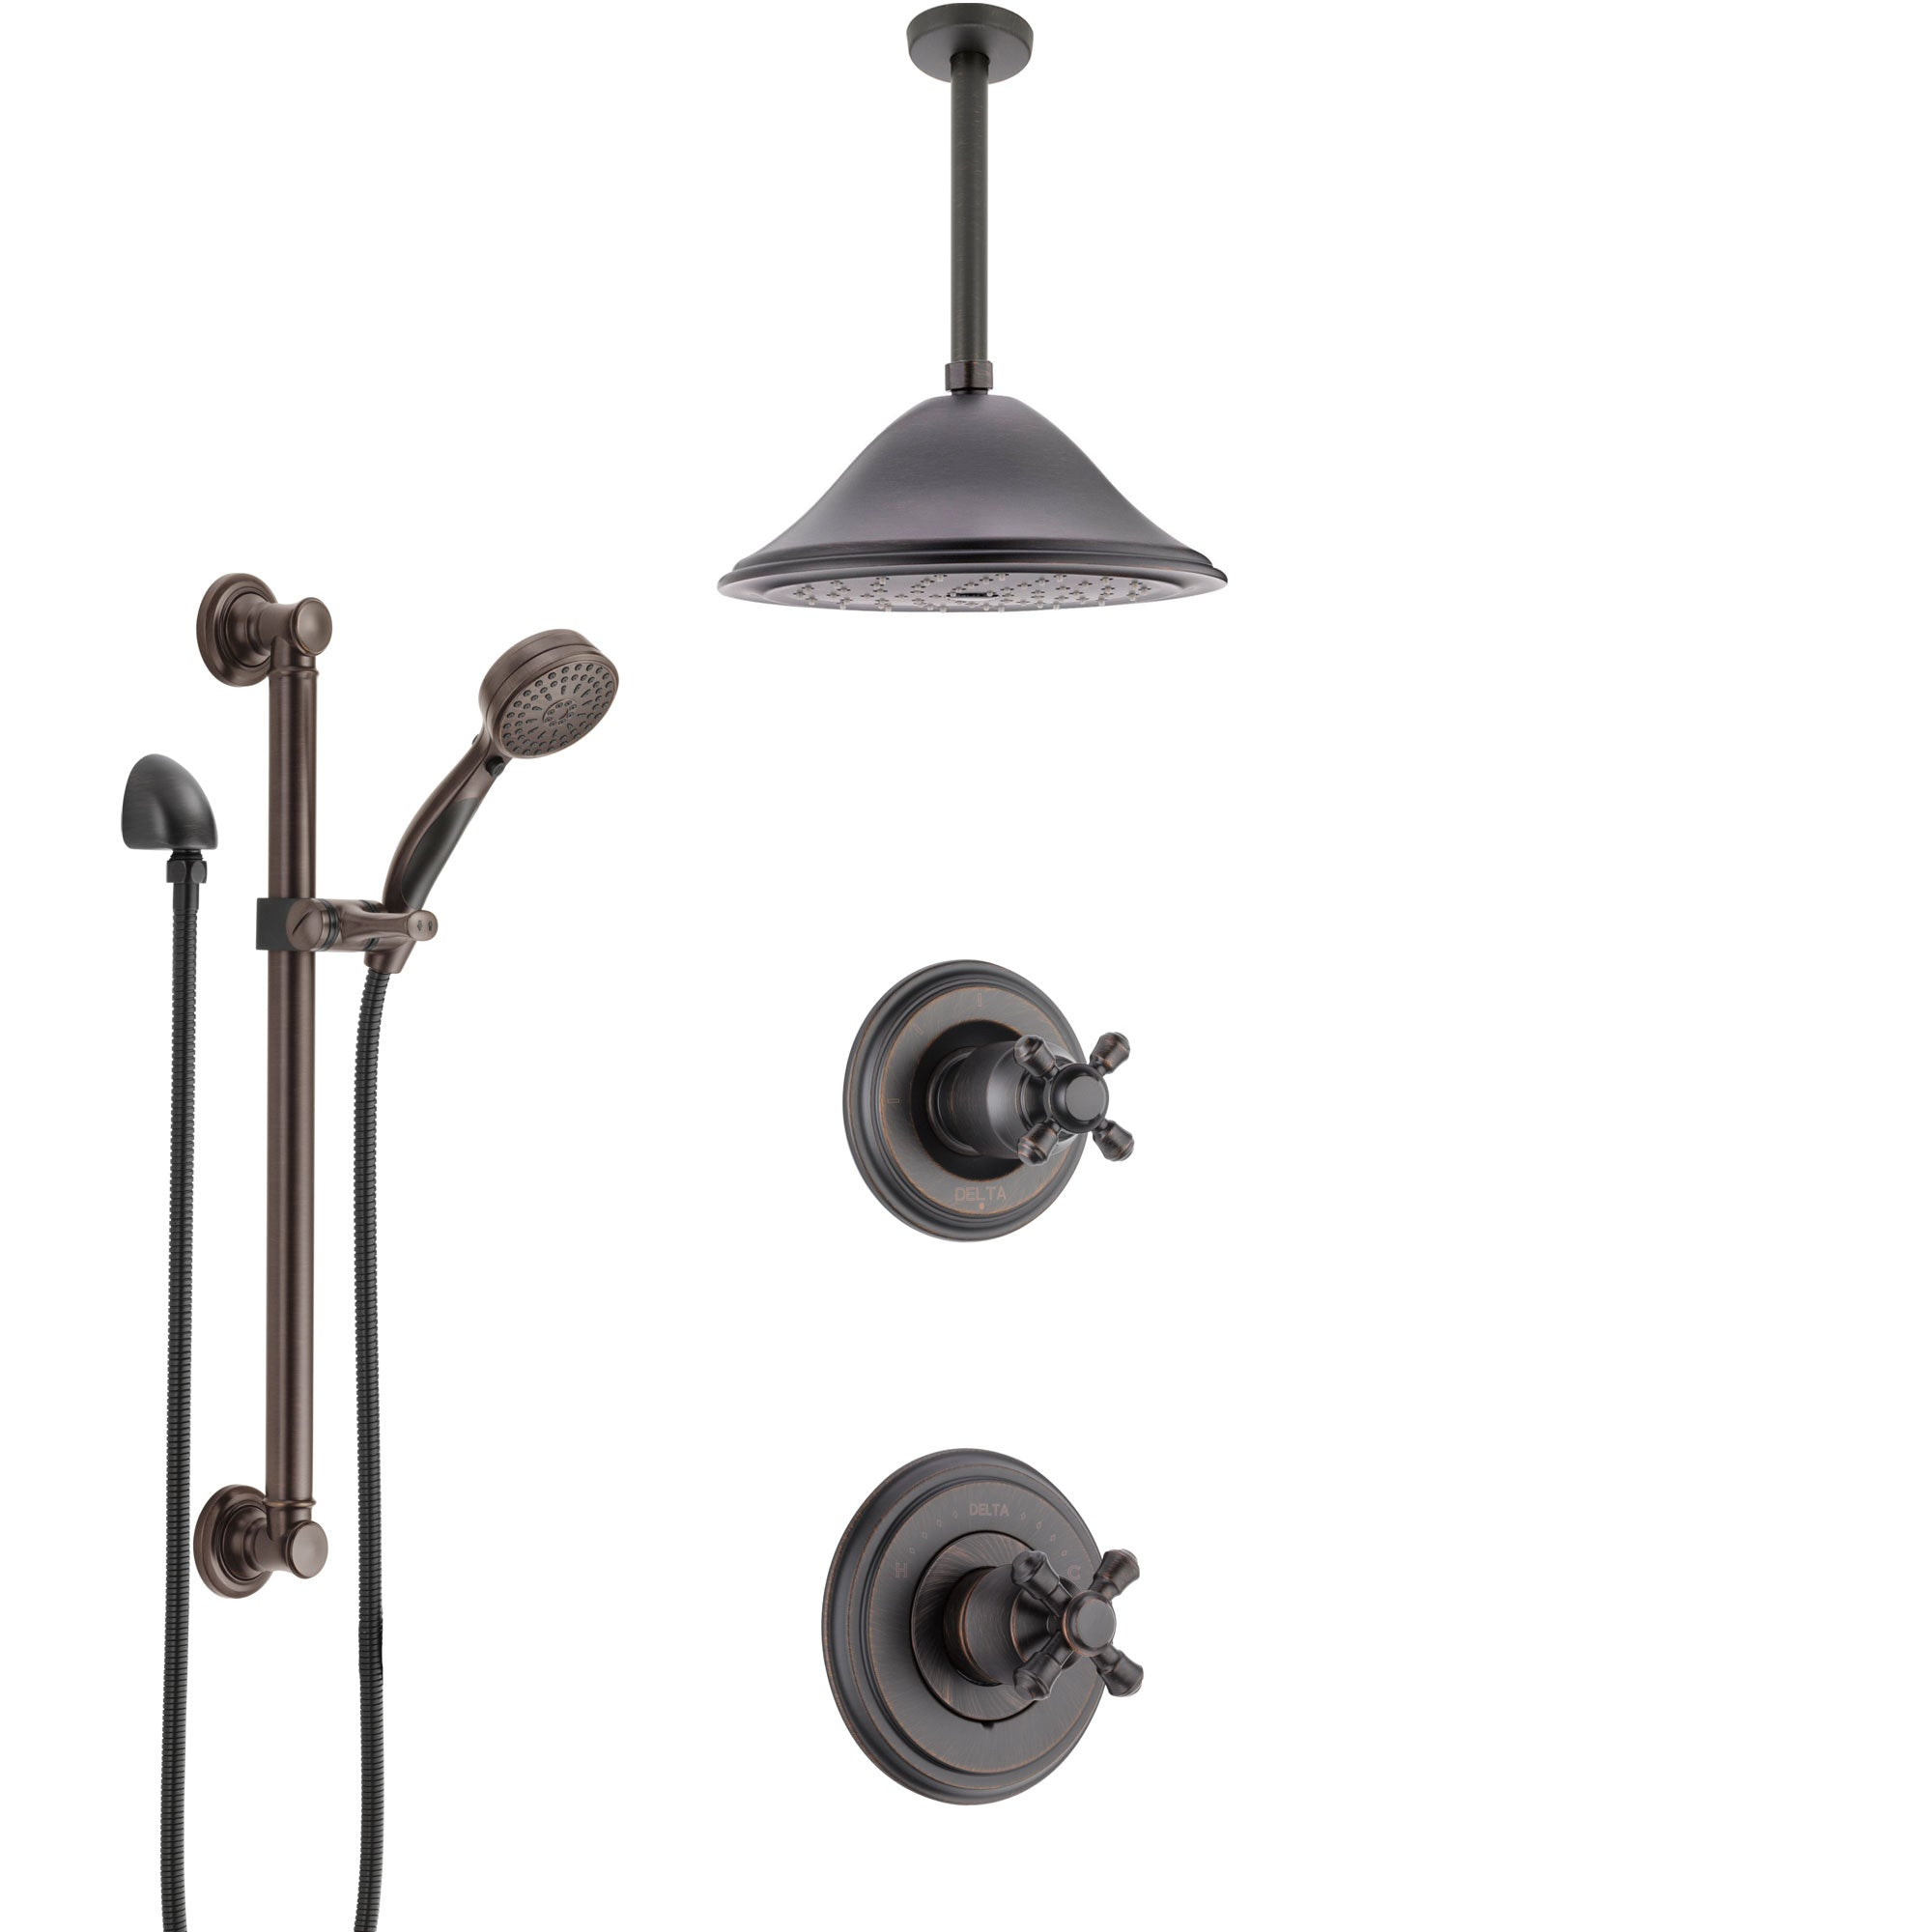 Delta Cassidy Venetian Bronze Shower System with Control Handle, Diverter, Ceiling Mount Showerhead, and Hand Shower with Grab Bar SS14972RB8